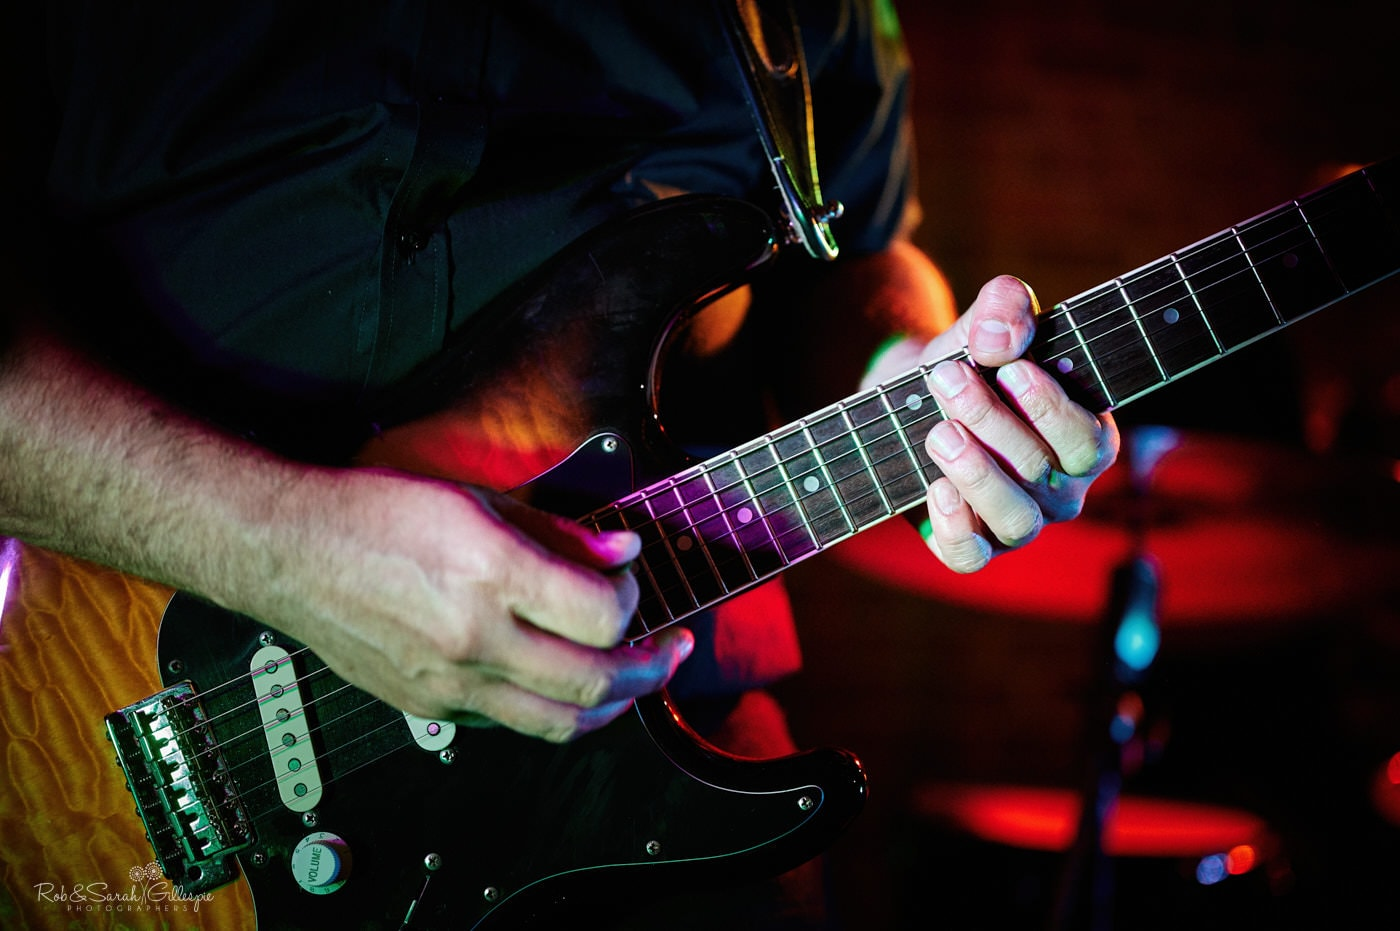 Close up of guitar as wedding band play